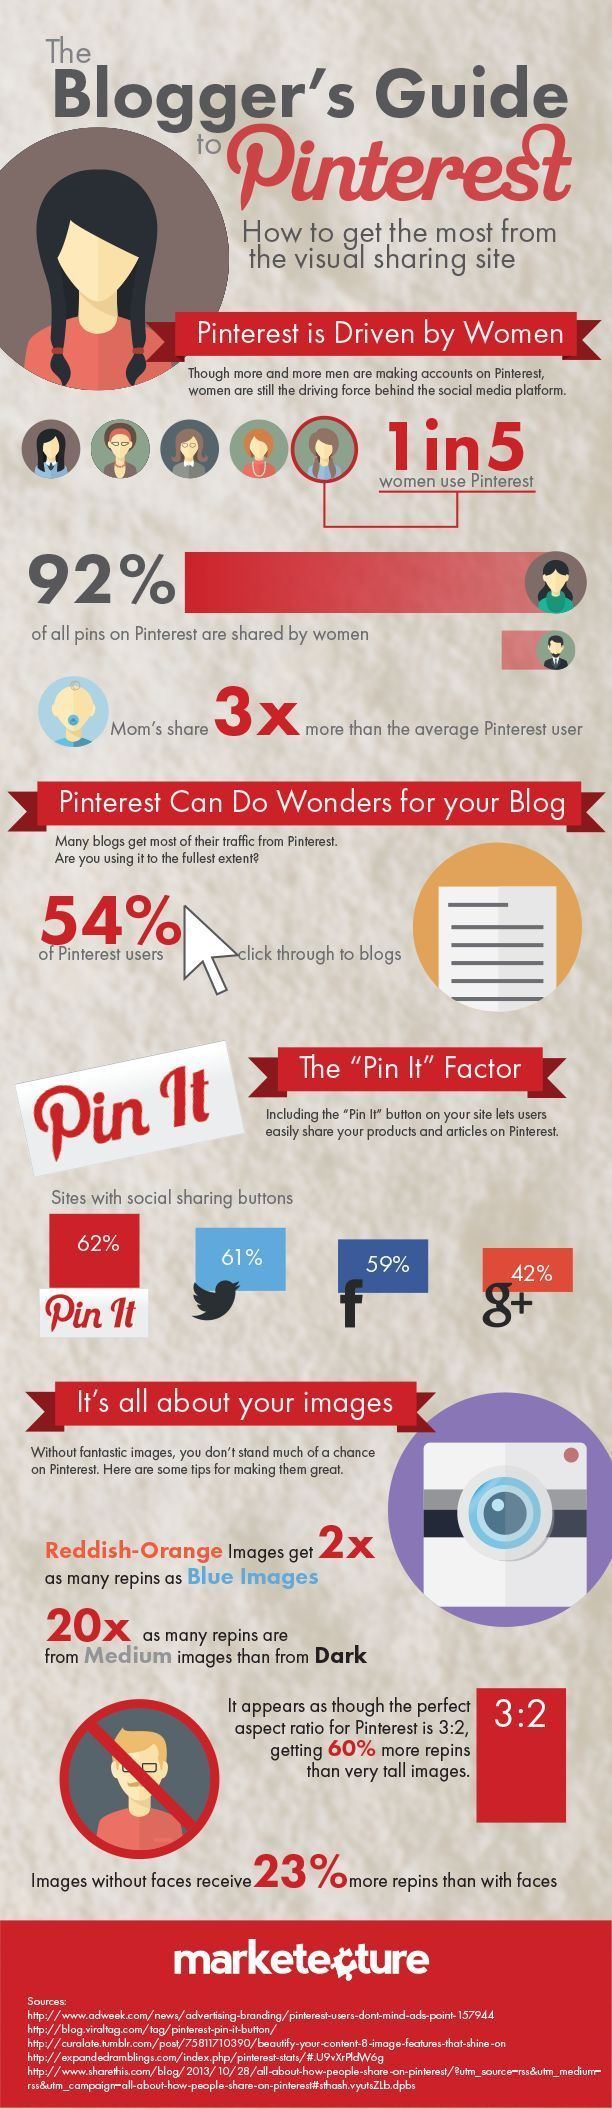 The Blogger's Guide to Pinterest: For bloggers and business owners Pinterest is a great platform to get their product and their content onto the web. It's a great social media resource that marketers need to be taking advantage of.